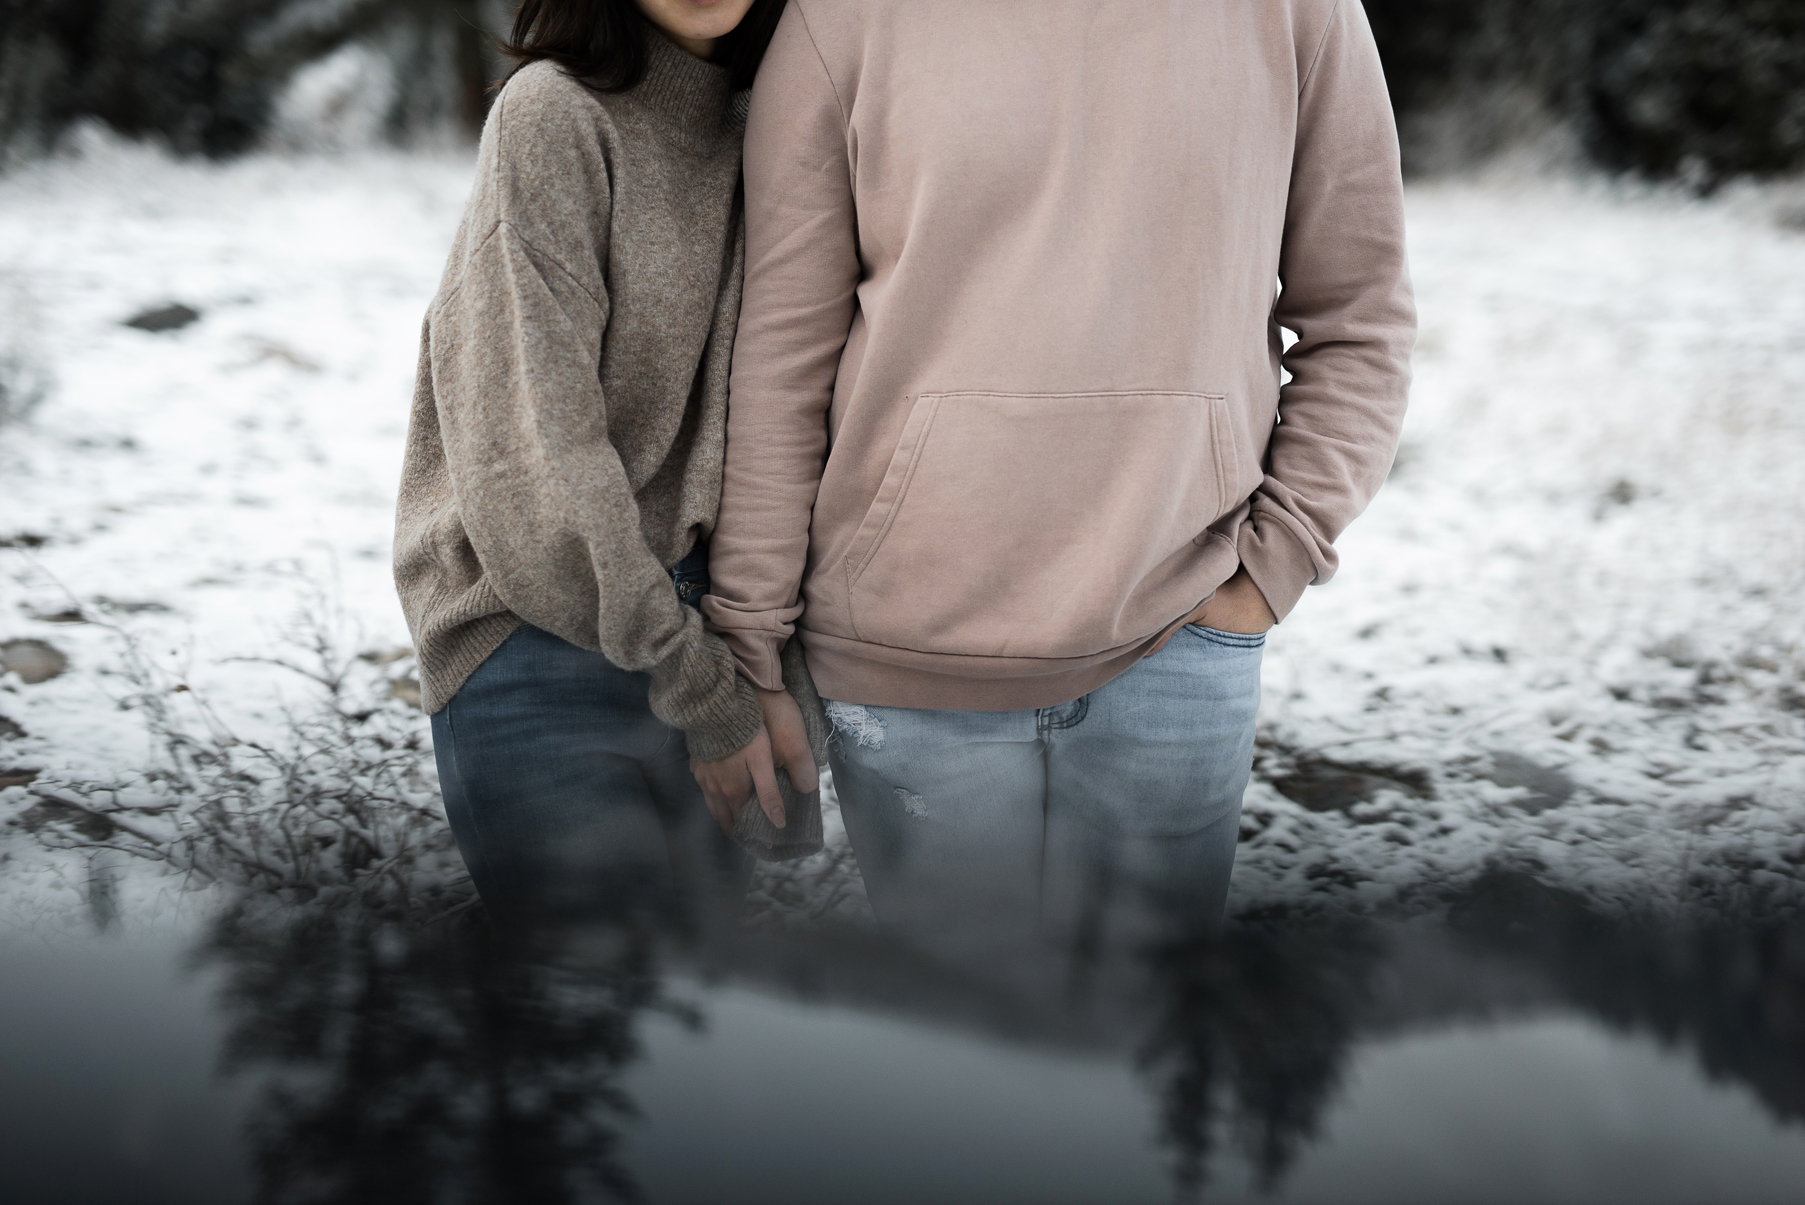 artistic portrait of couple in the snow